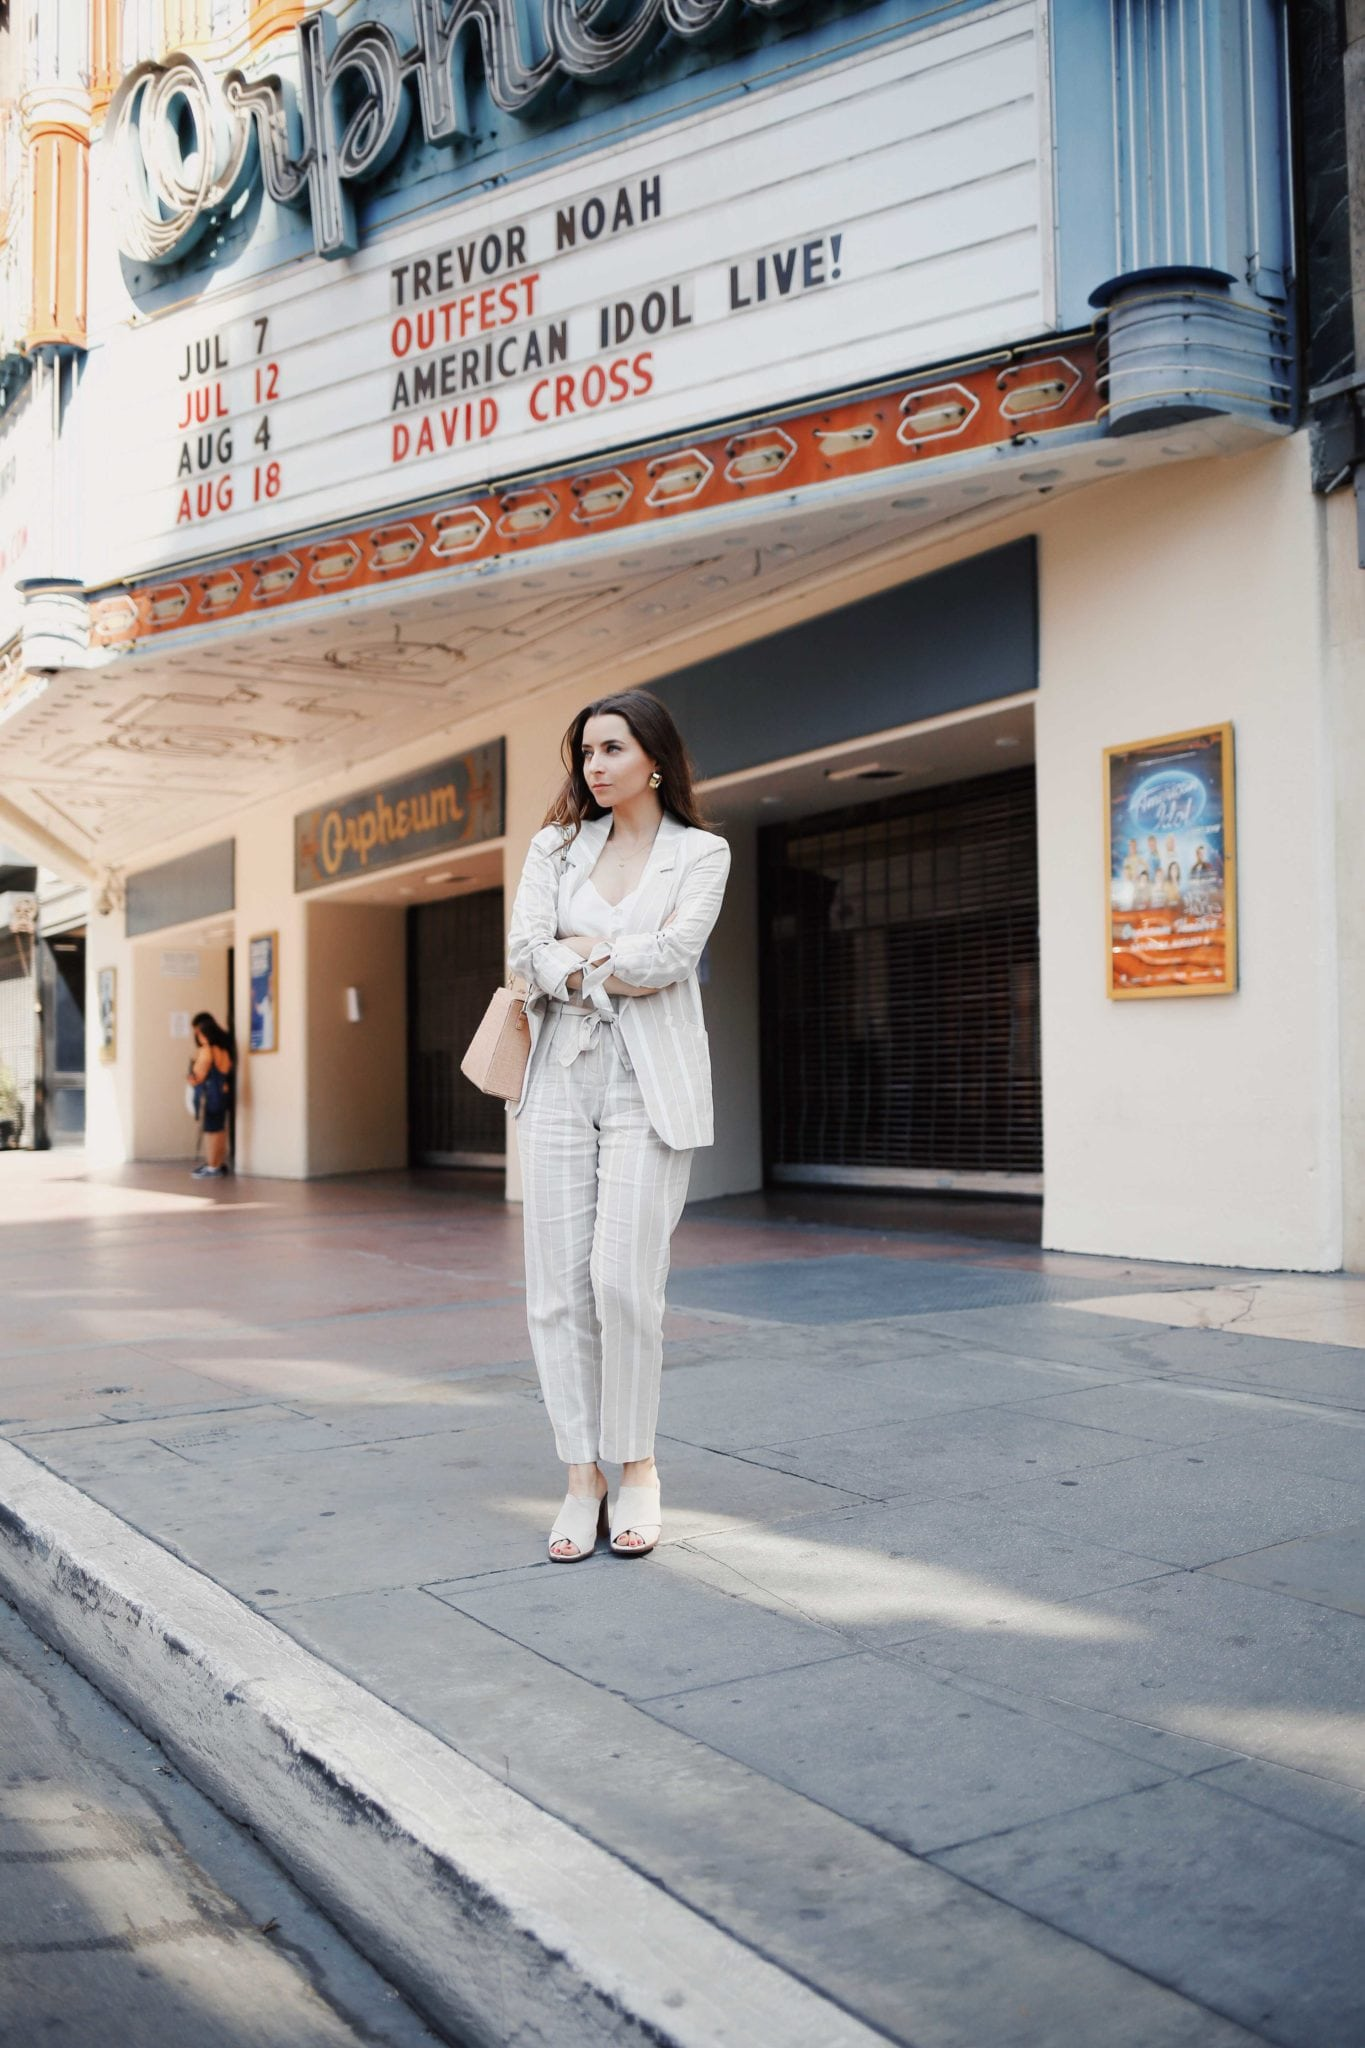 How to style linen - The linen suits for work and the bardot dress from River Island. Summer style - Read this post for summer outfit ideas using linen fabric. More on modersvp.com